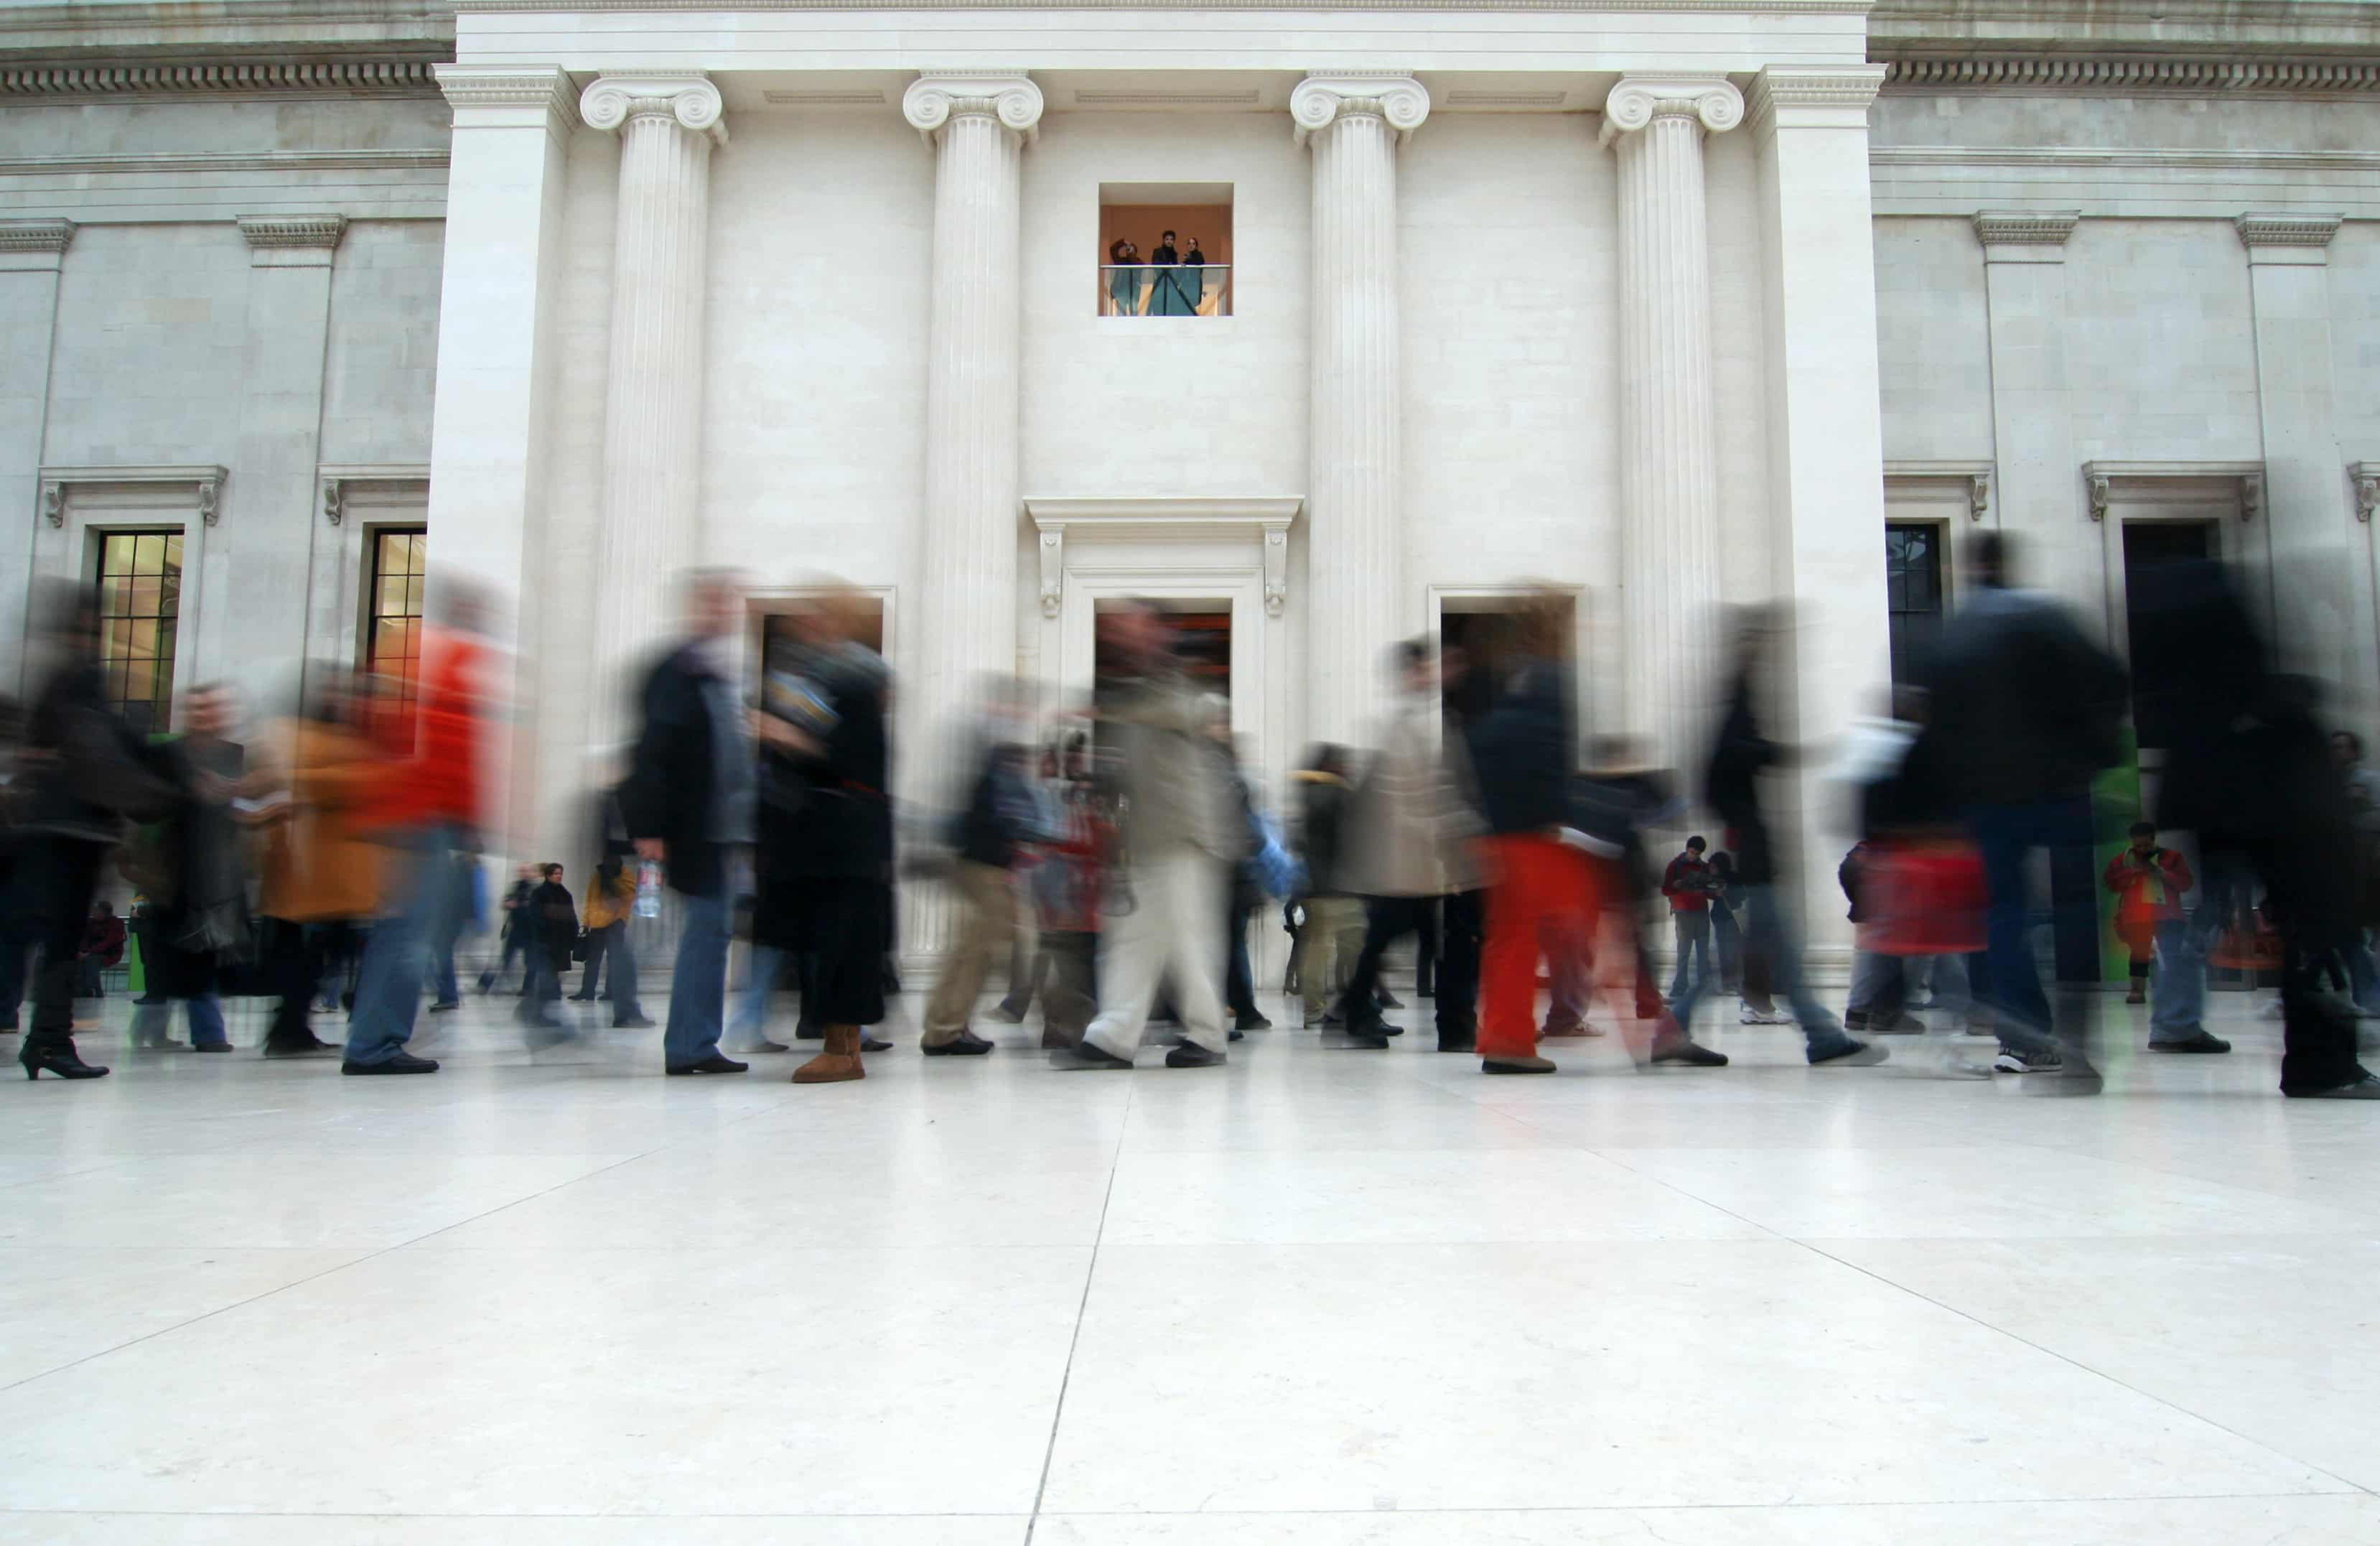 A blurry crowd of people walking in front of a white building with columns.